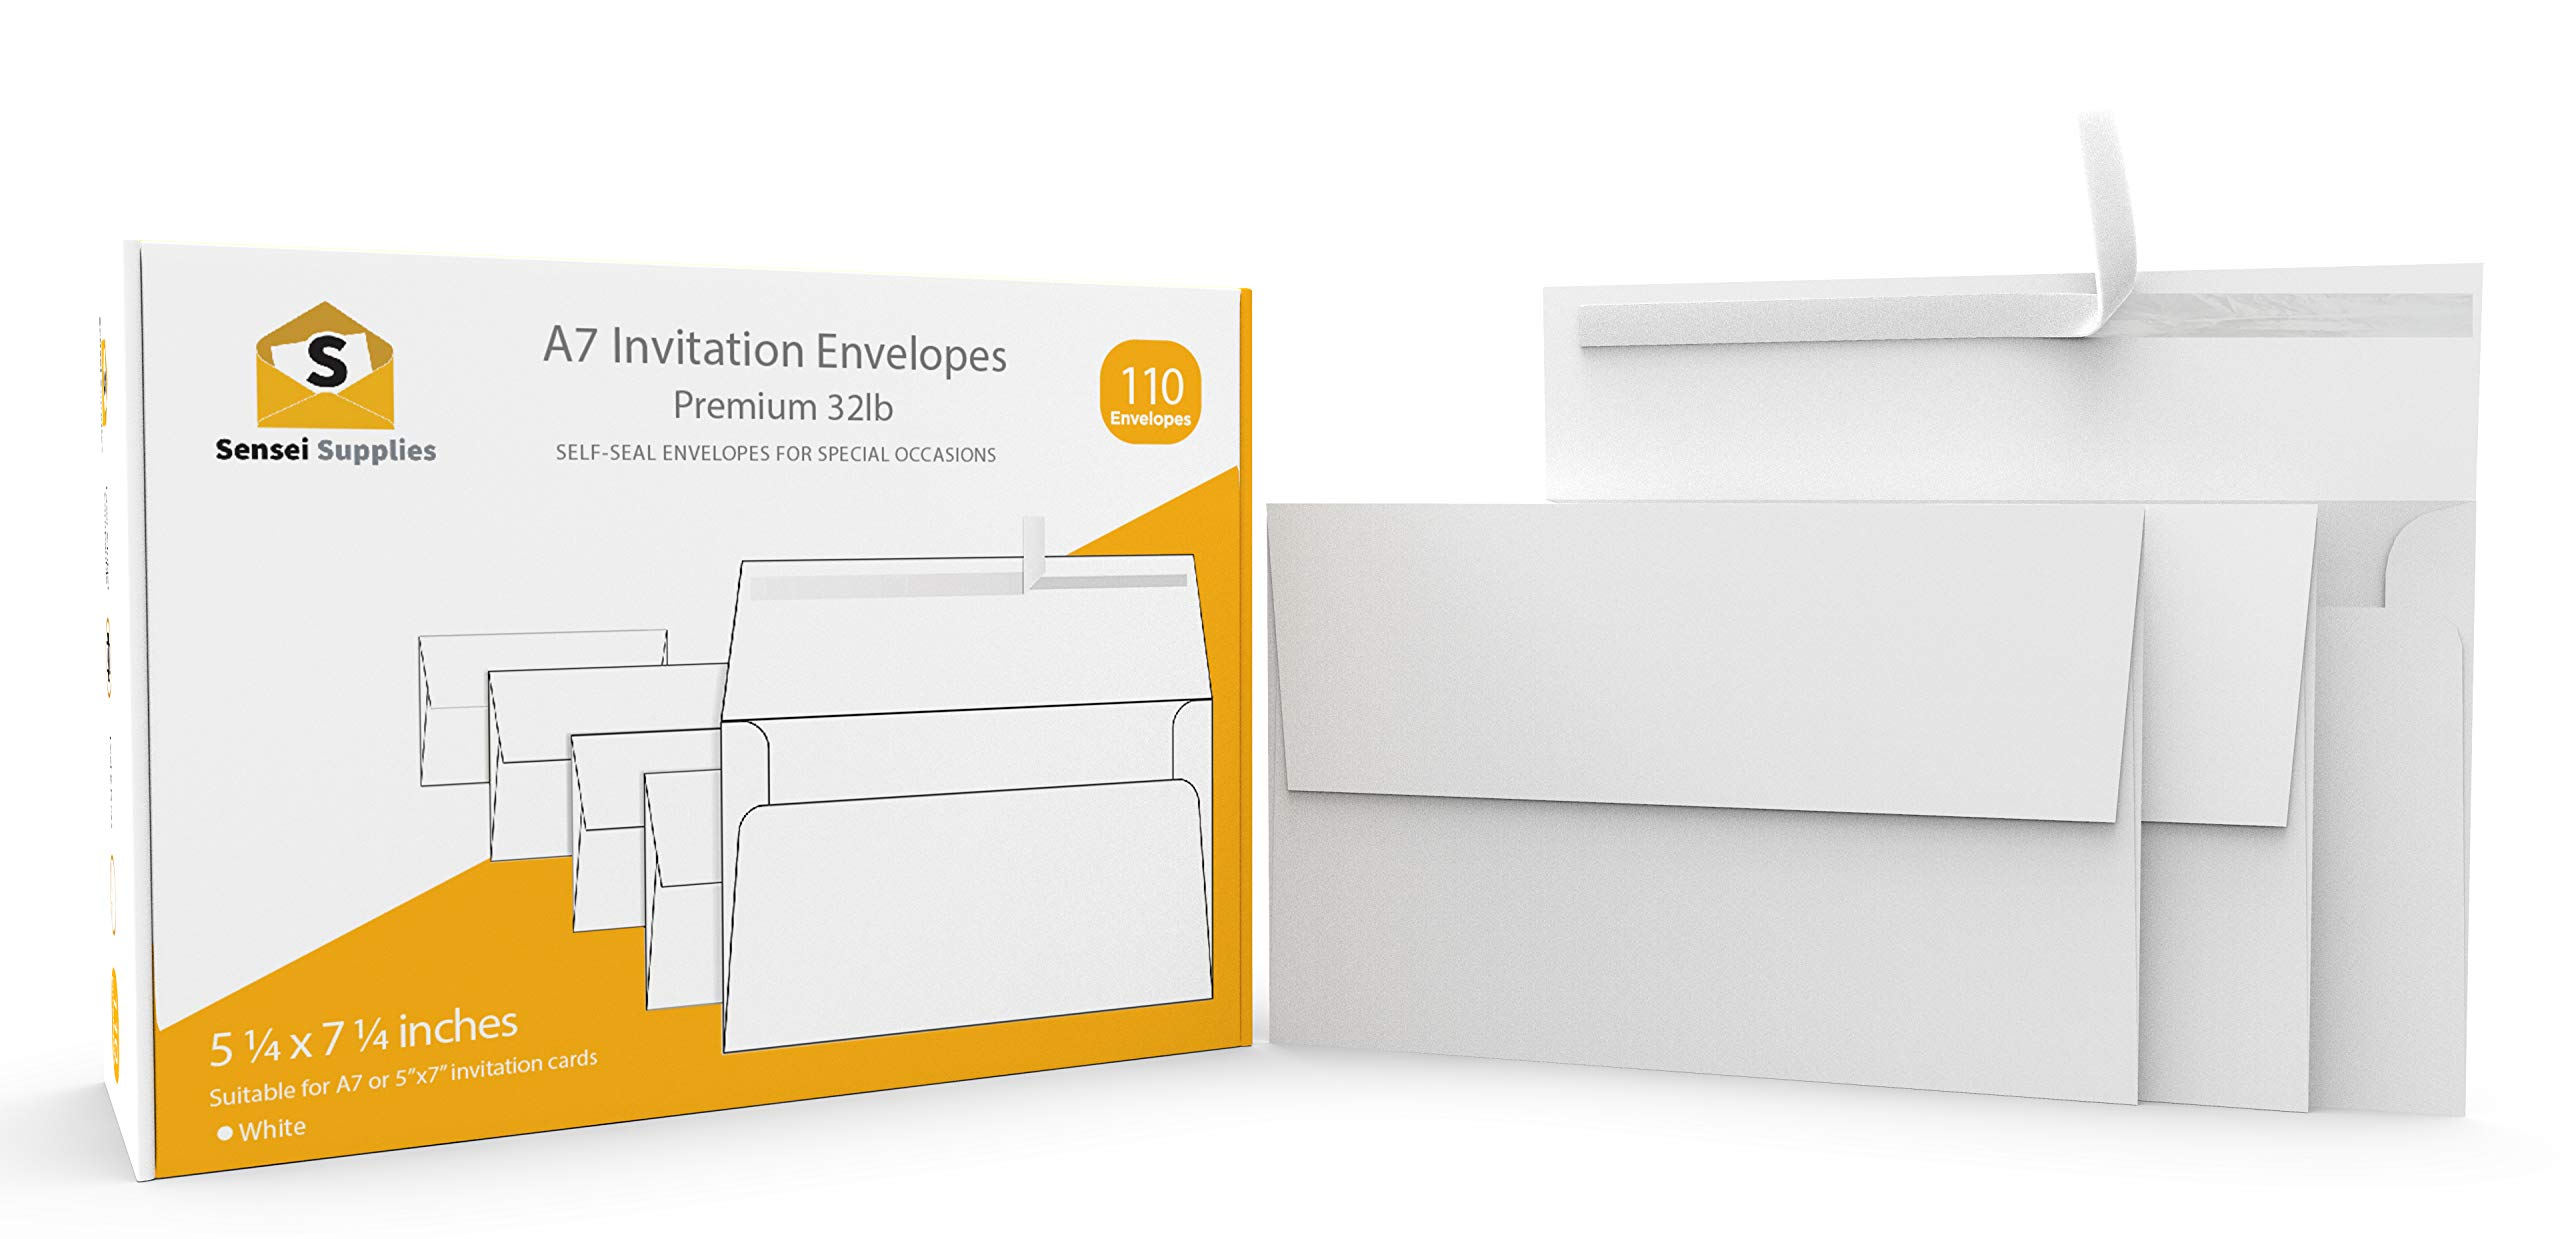 white invitation 5 x 7 envelopes 110 pack for 5x7 cards a7 5